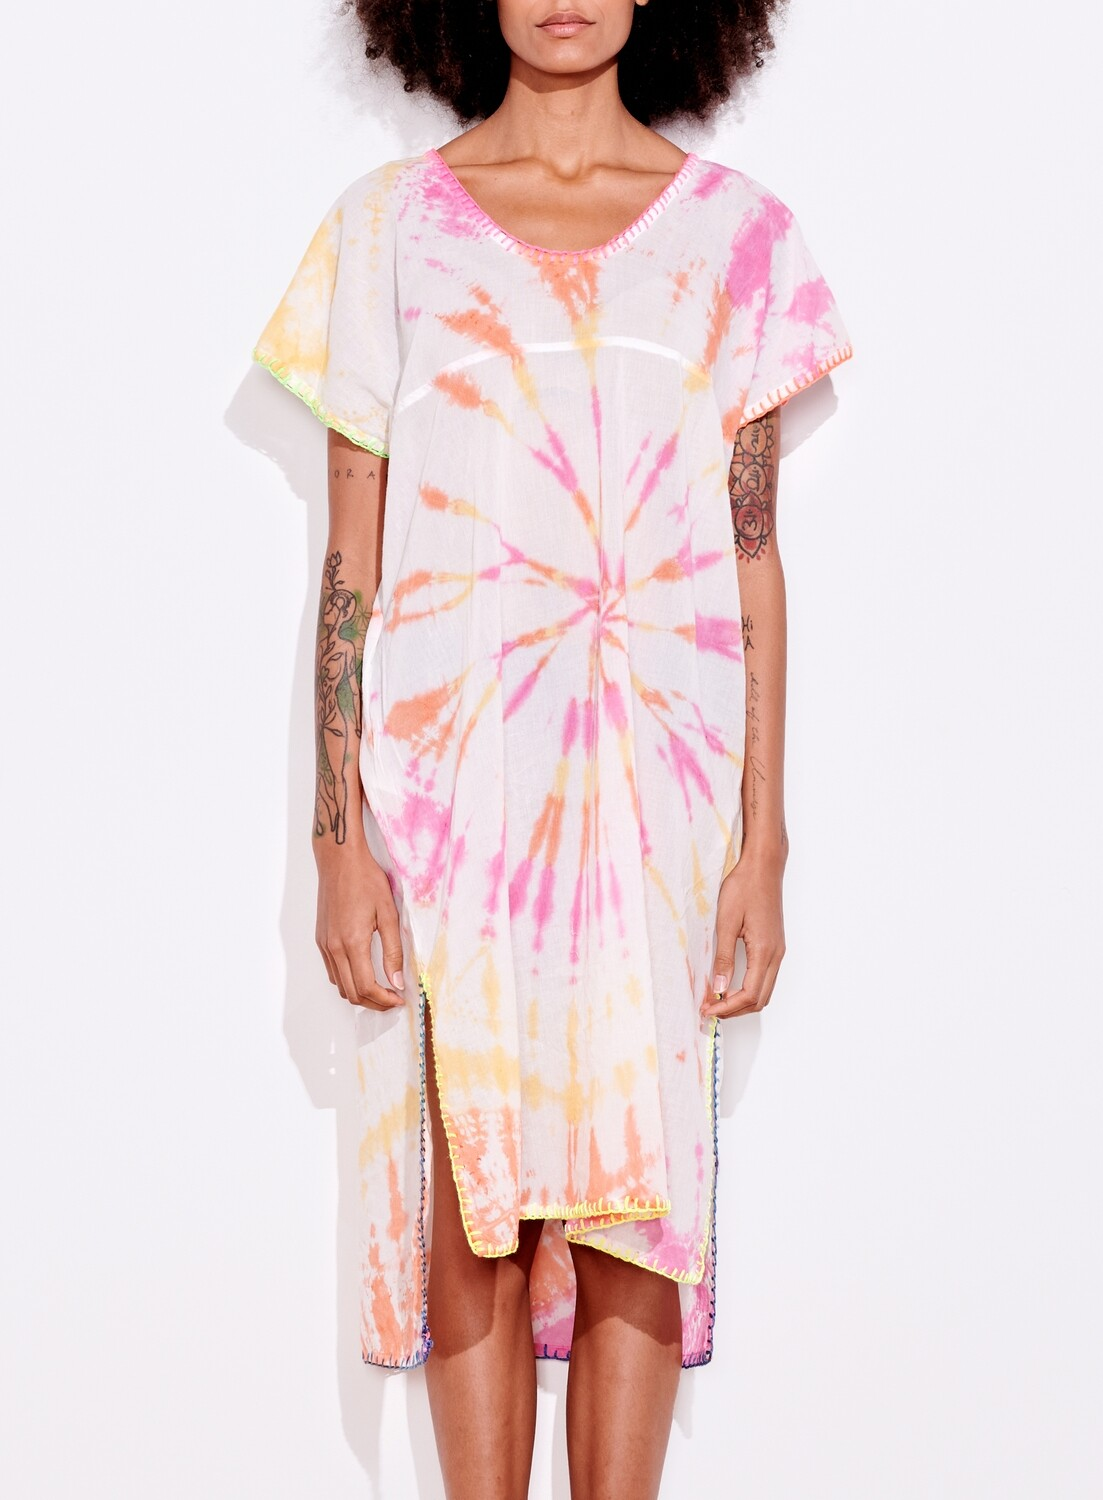 Sundry, Kaftan Embroidered, Pink/Canary TD, ONE SIZE